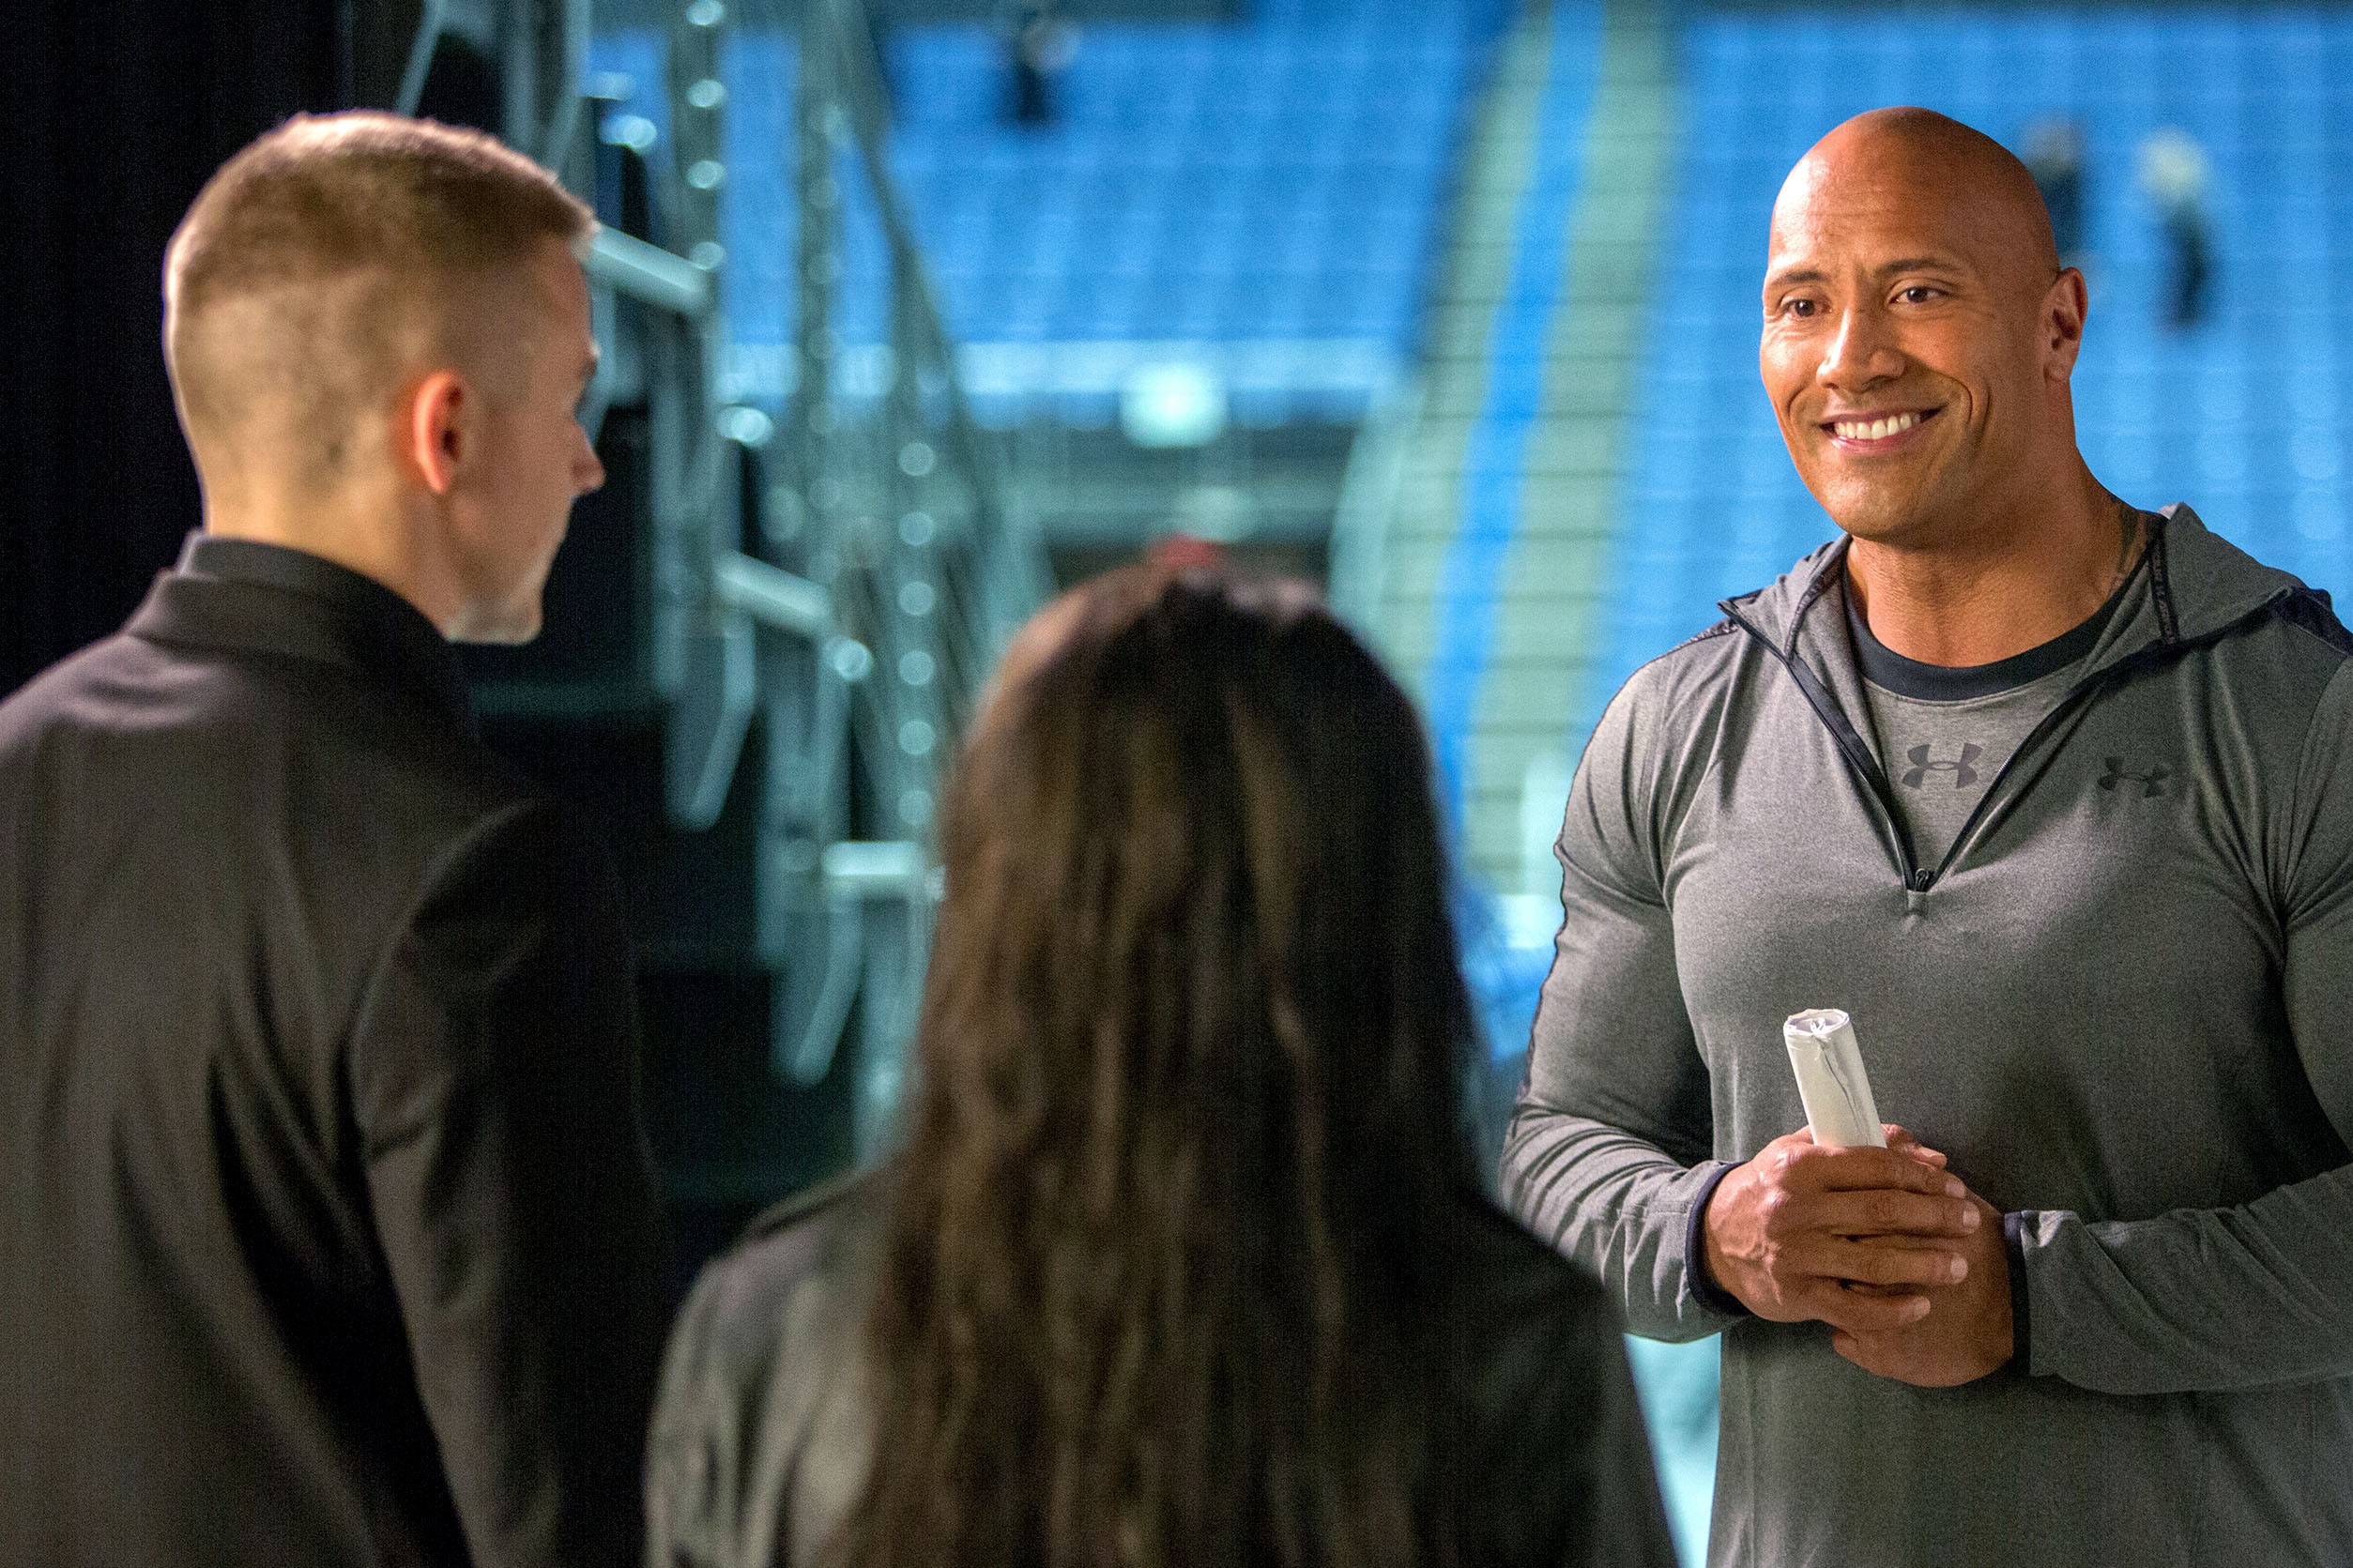 Dwayne Johnson stars in a scene from the movie